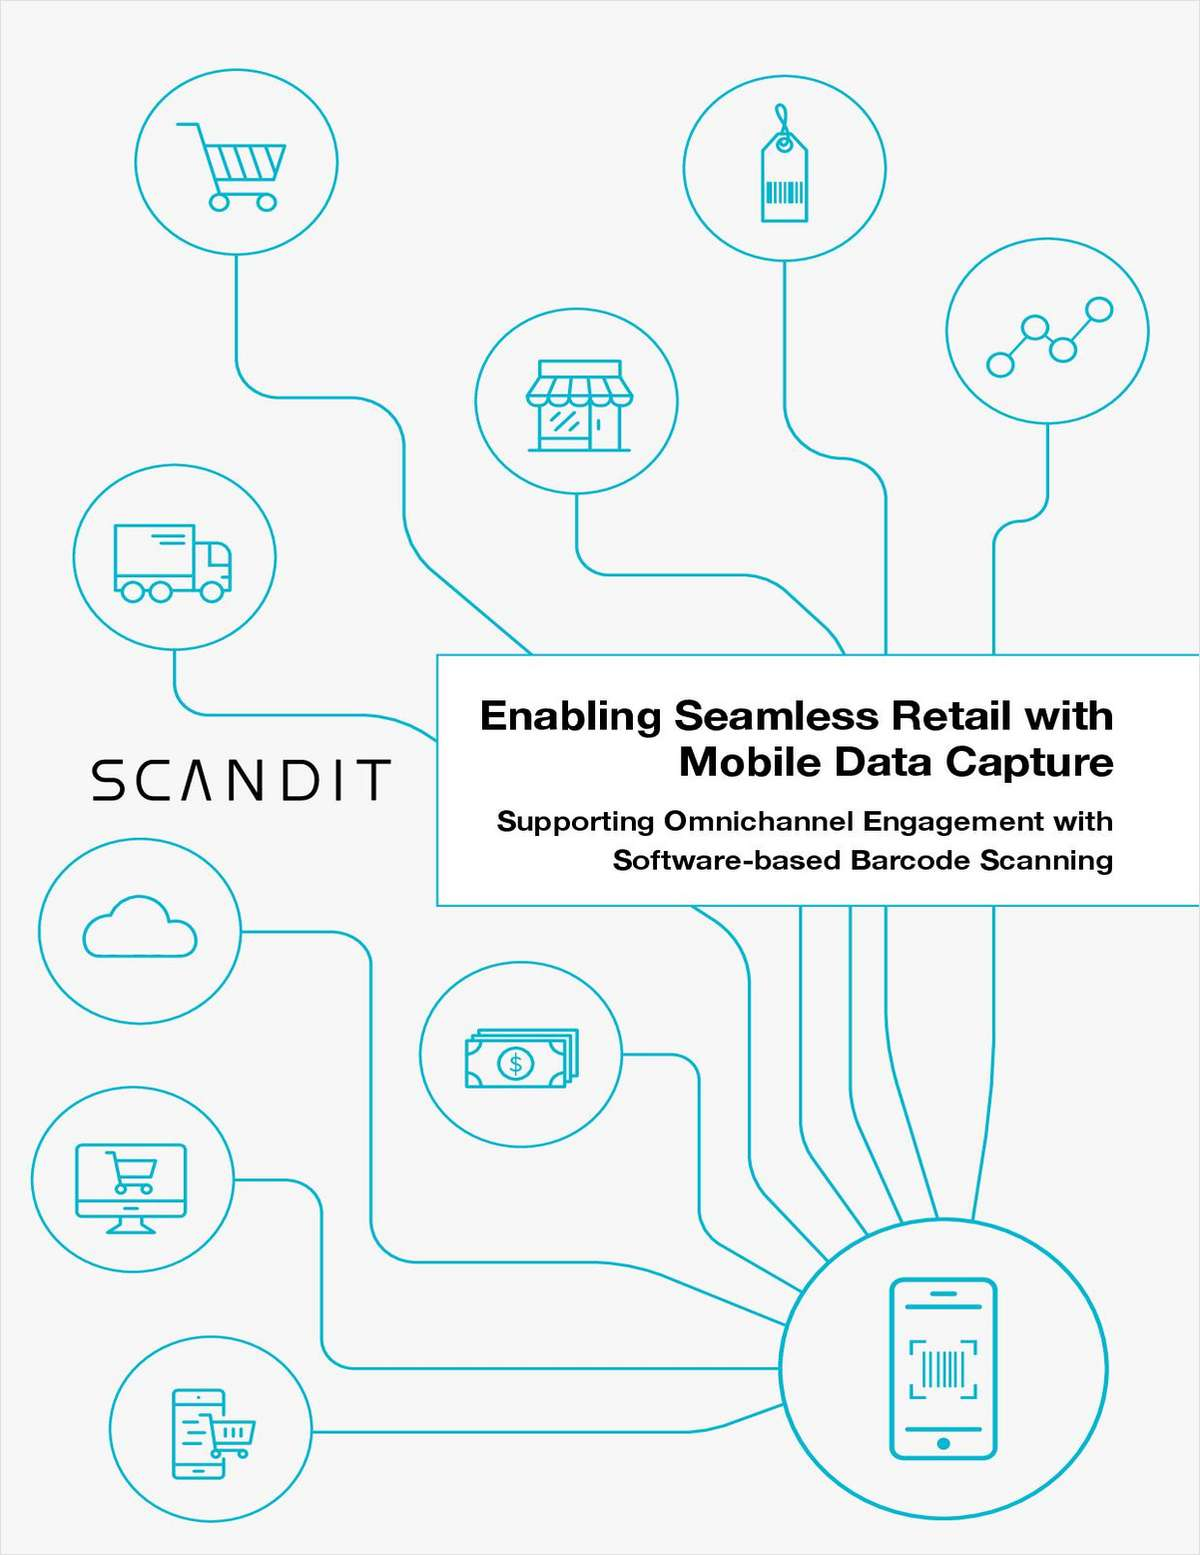 Mobile Data Capture Solution Deployment - Enabling Seamless Retail